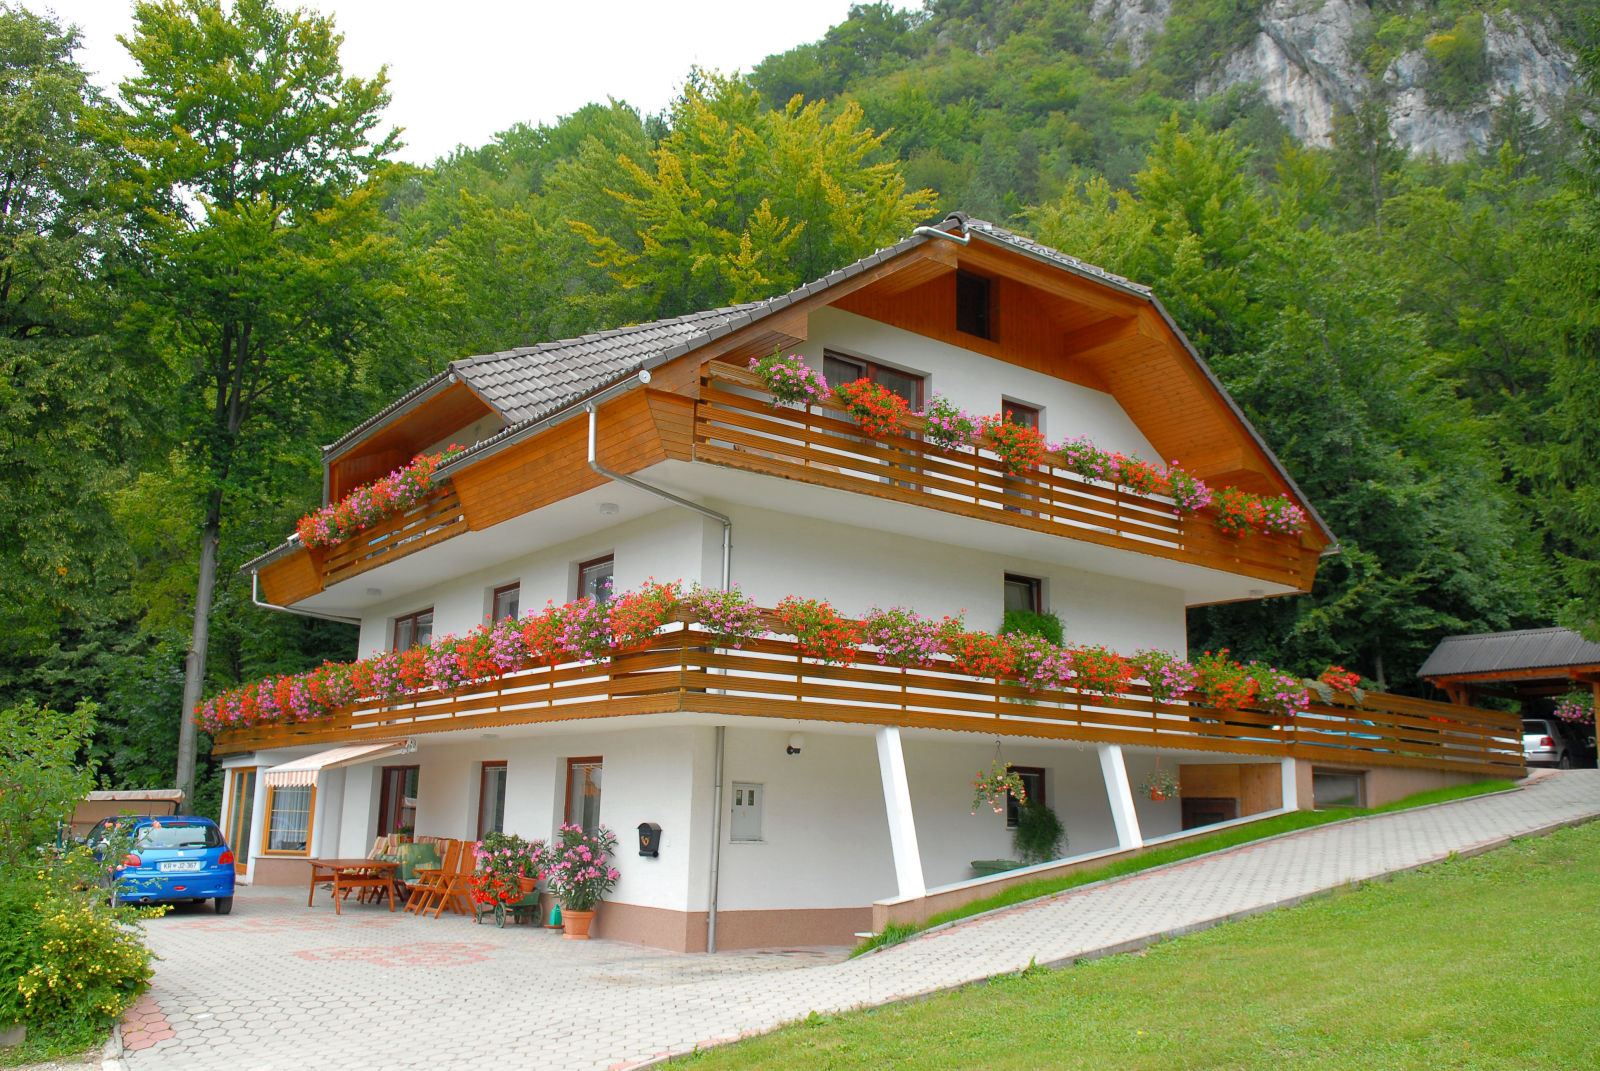 Exterior of the Fine Stay Apartment in the Bled area in Slovenia